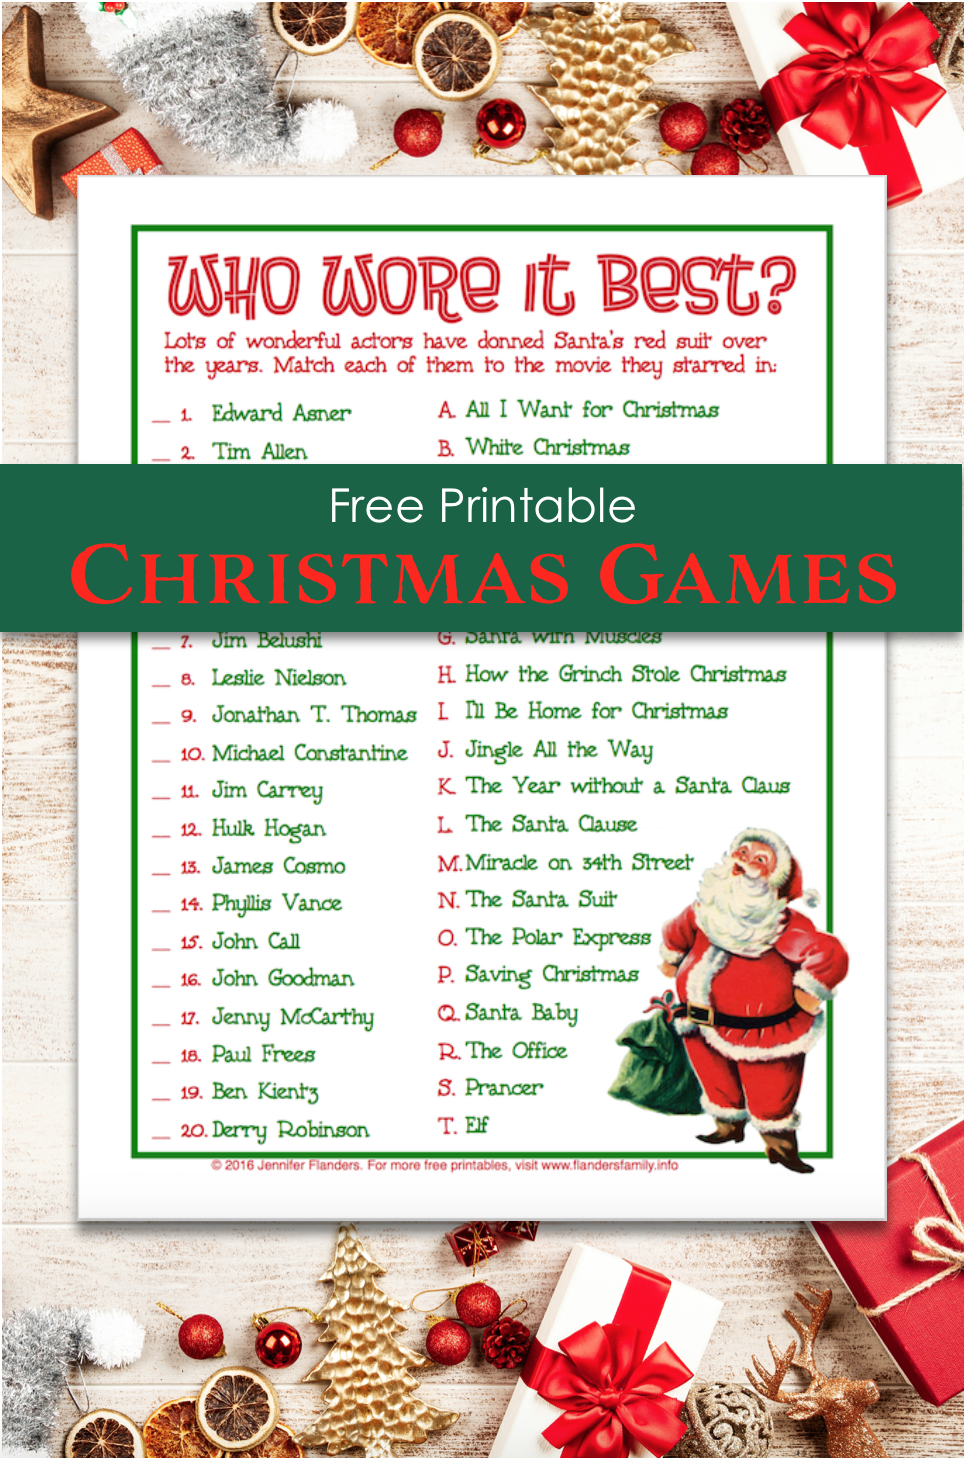 photograph about Printable Christmas Games With Answers called Who Wore It Suitable? (Totally free Printable Xmas Recreation) - Flanders